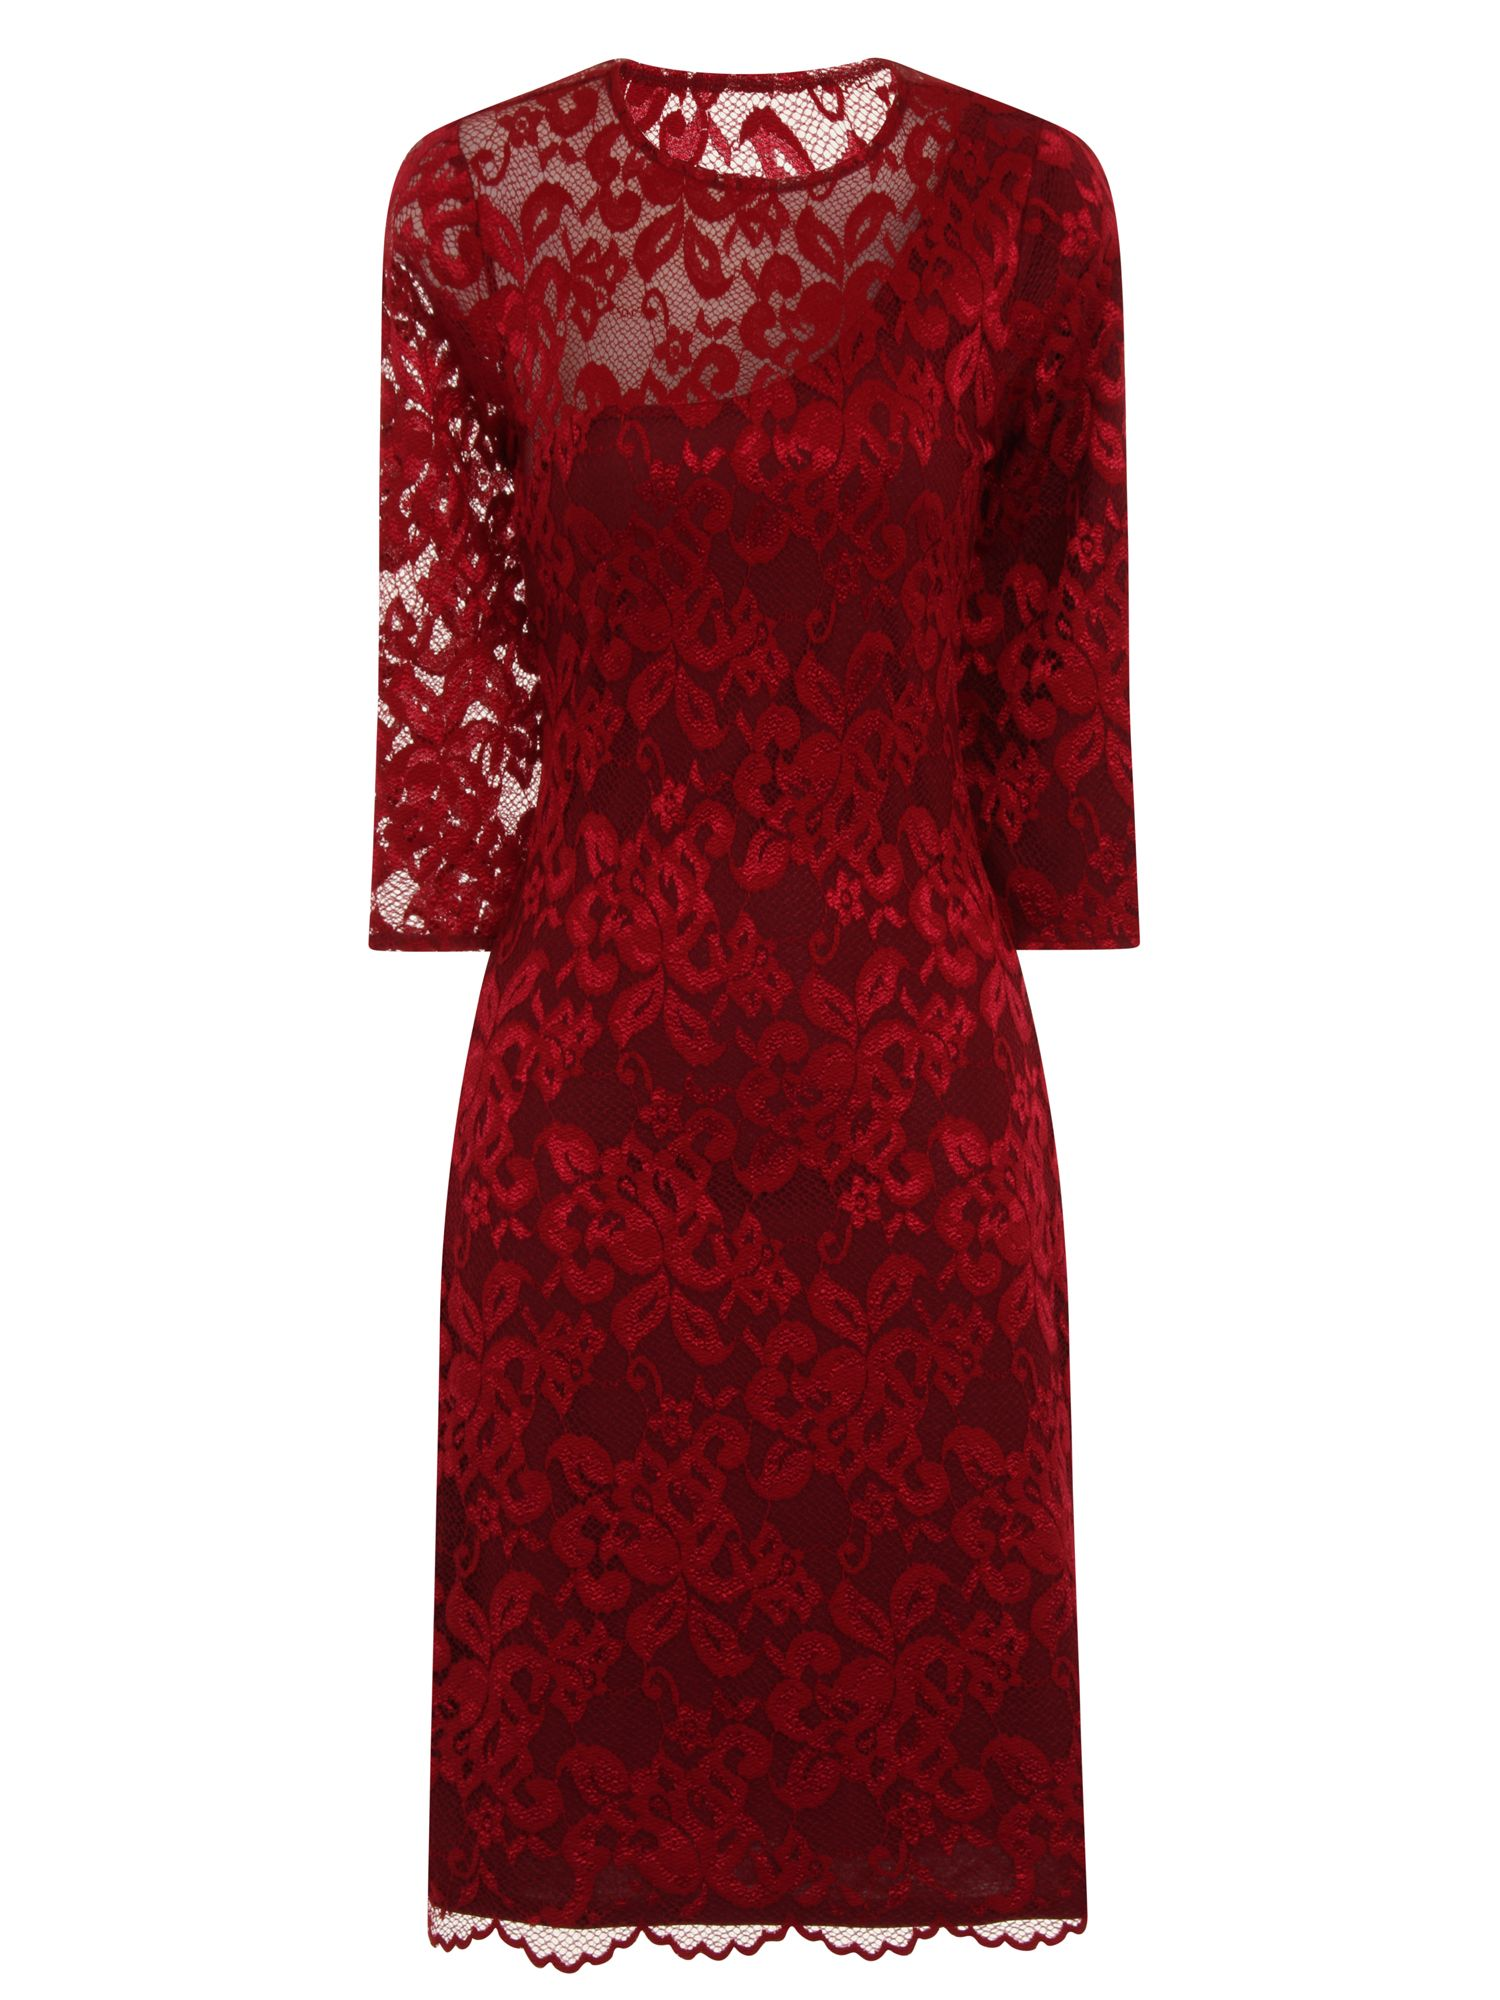 HotSquash One-Sleeved Lace Dress in Clever Fabric, Red